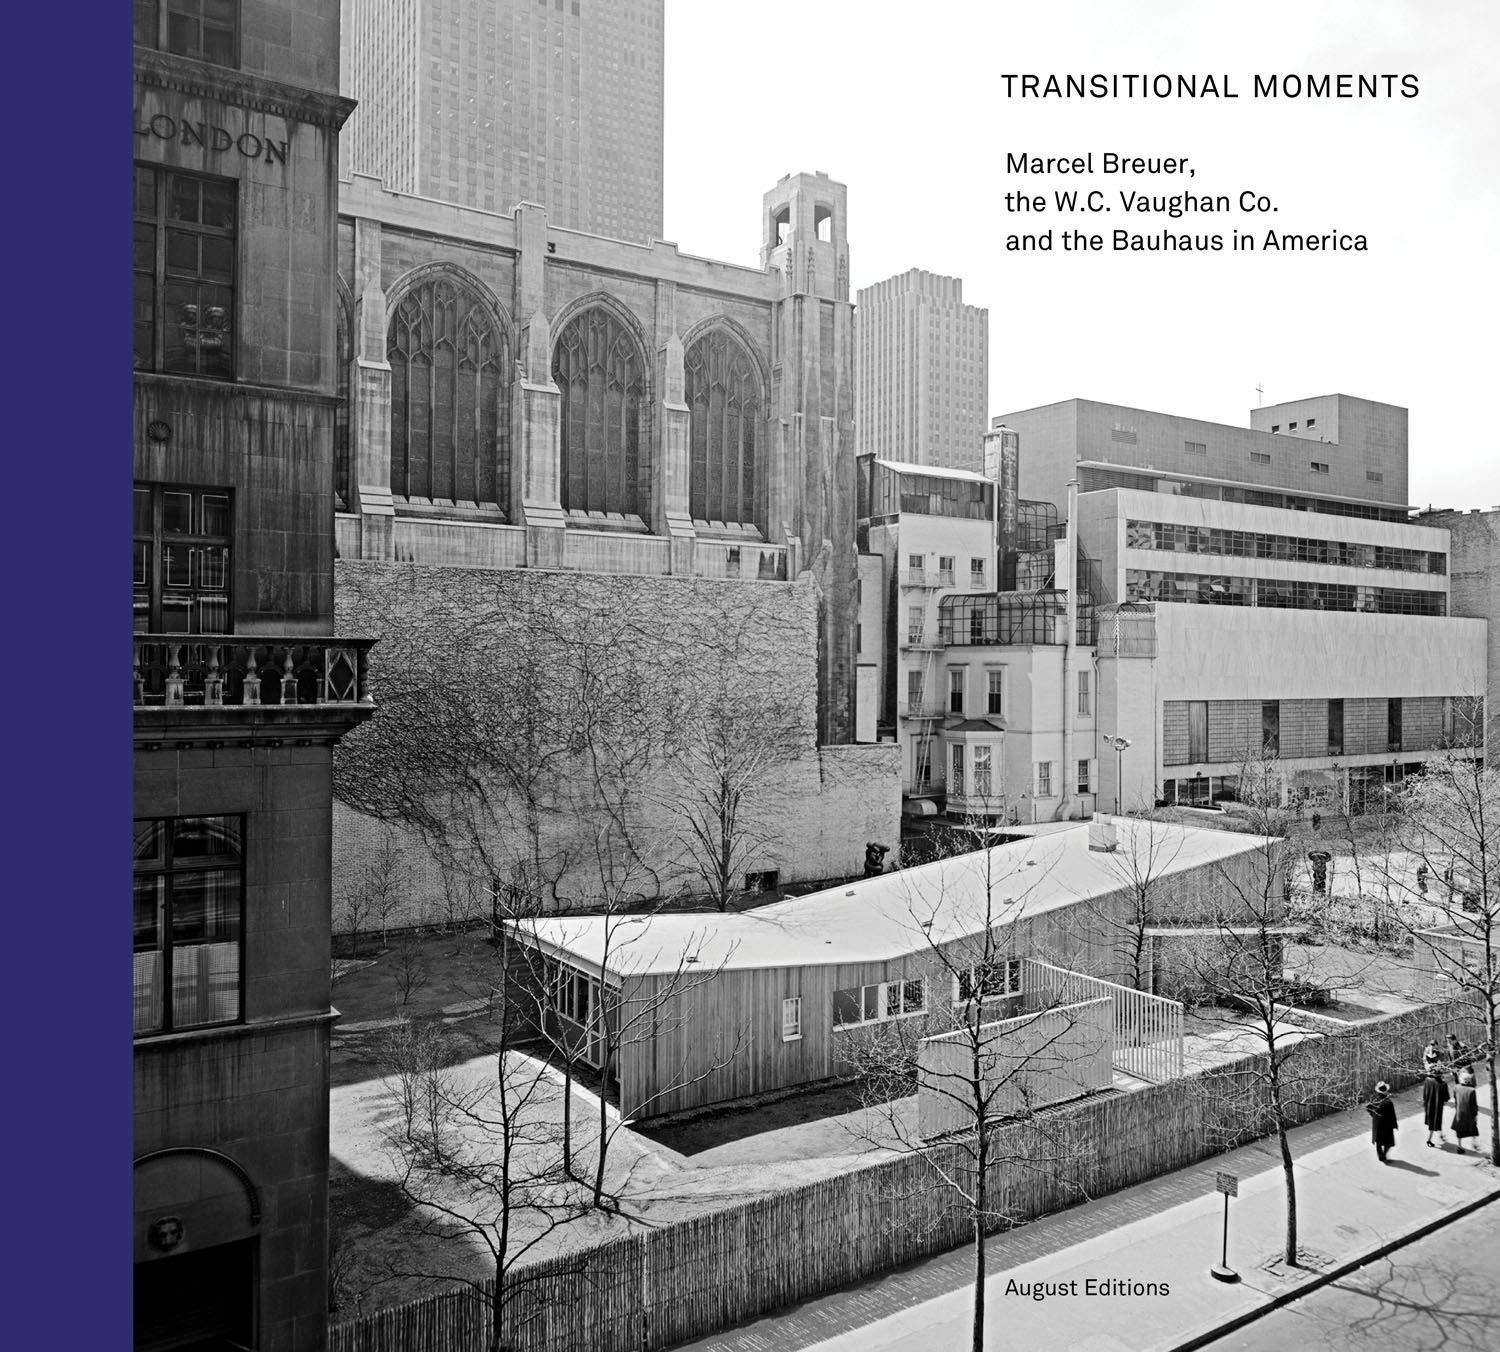 TRANSITIONAL MOMENTS MARCEL BREUER W.C. VAUGHAN & CO AND THE BAUHAUS IN AMERICA /ANGLAIS